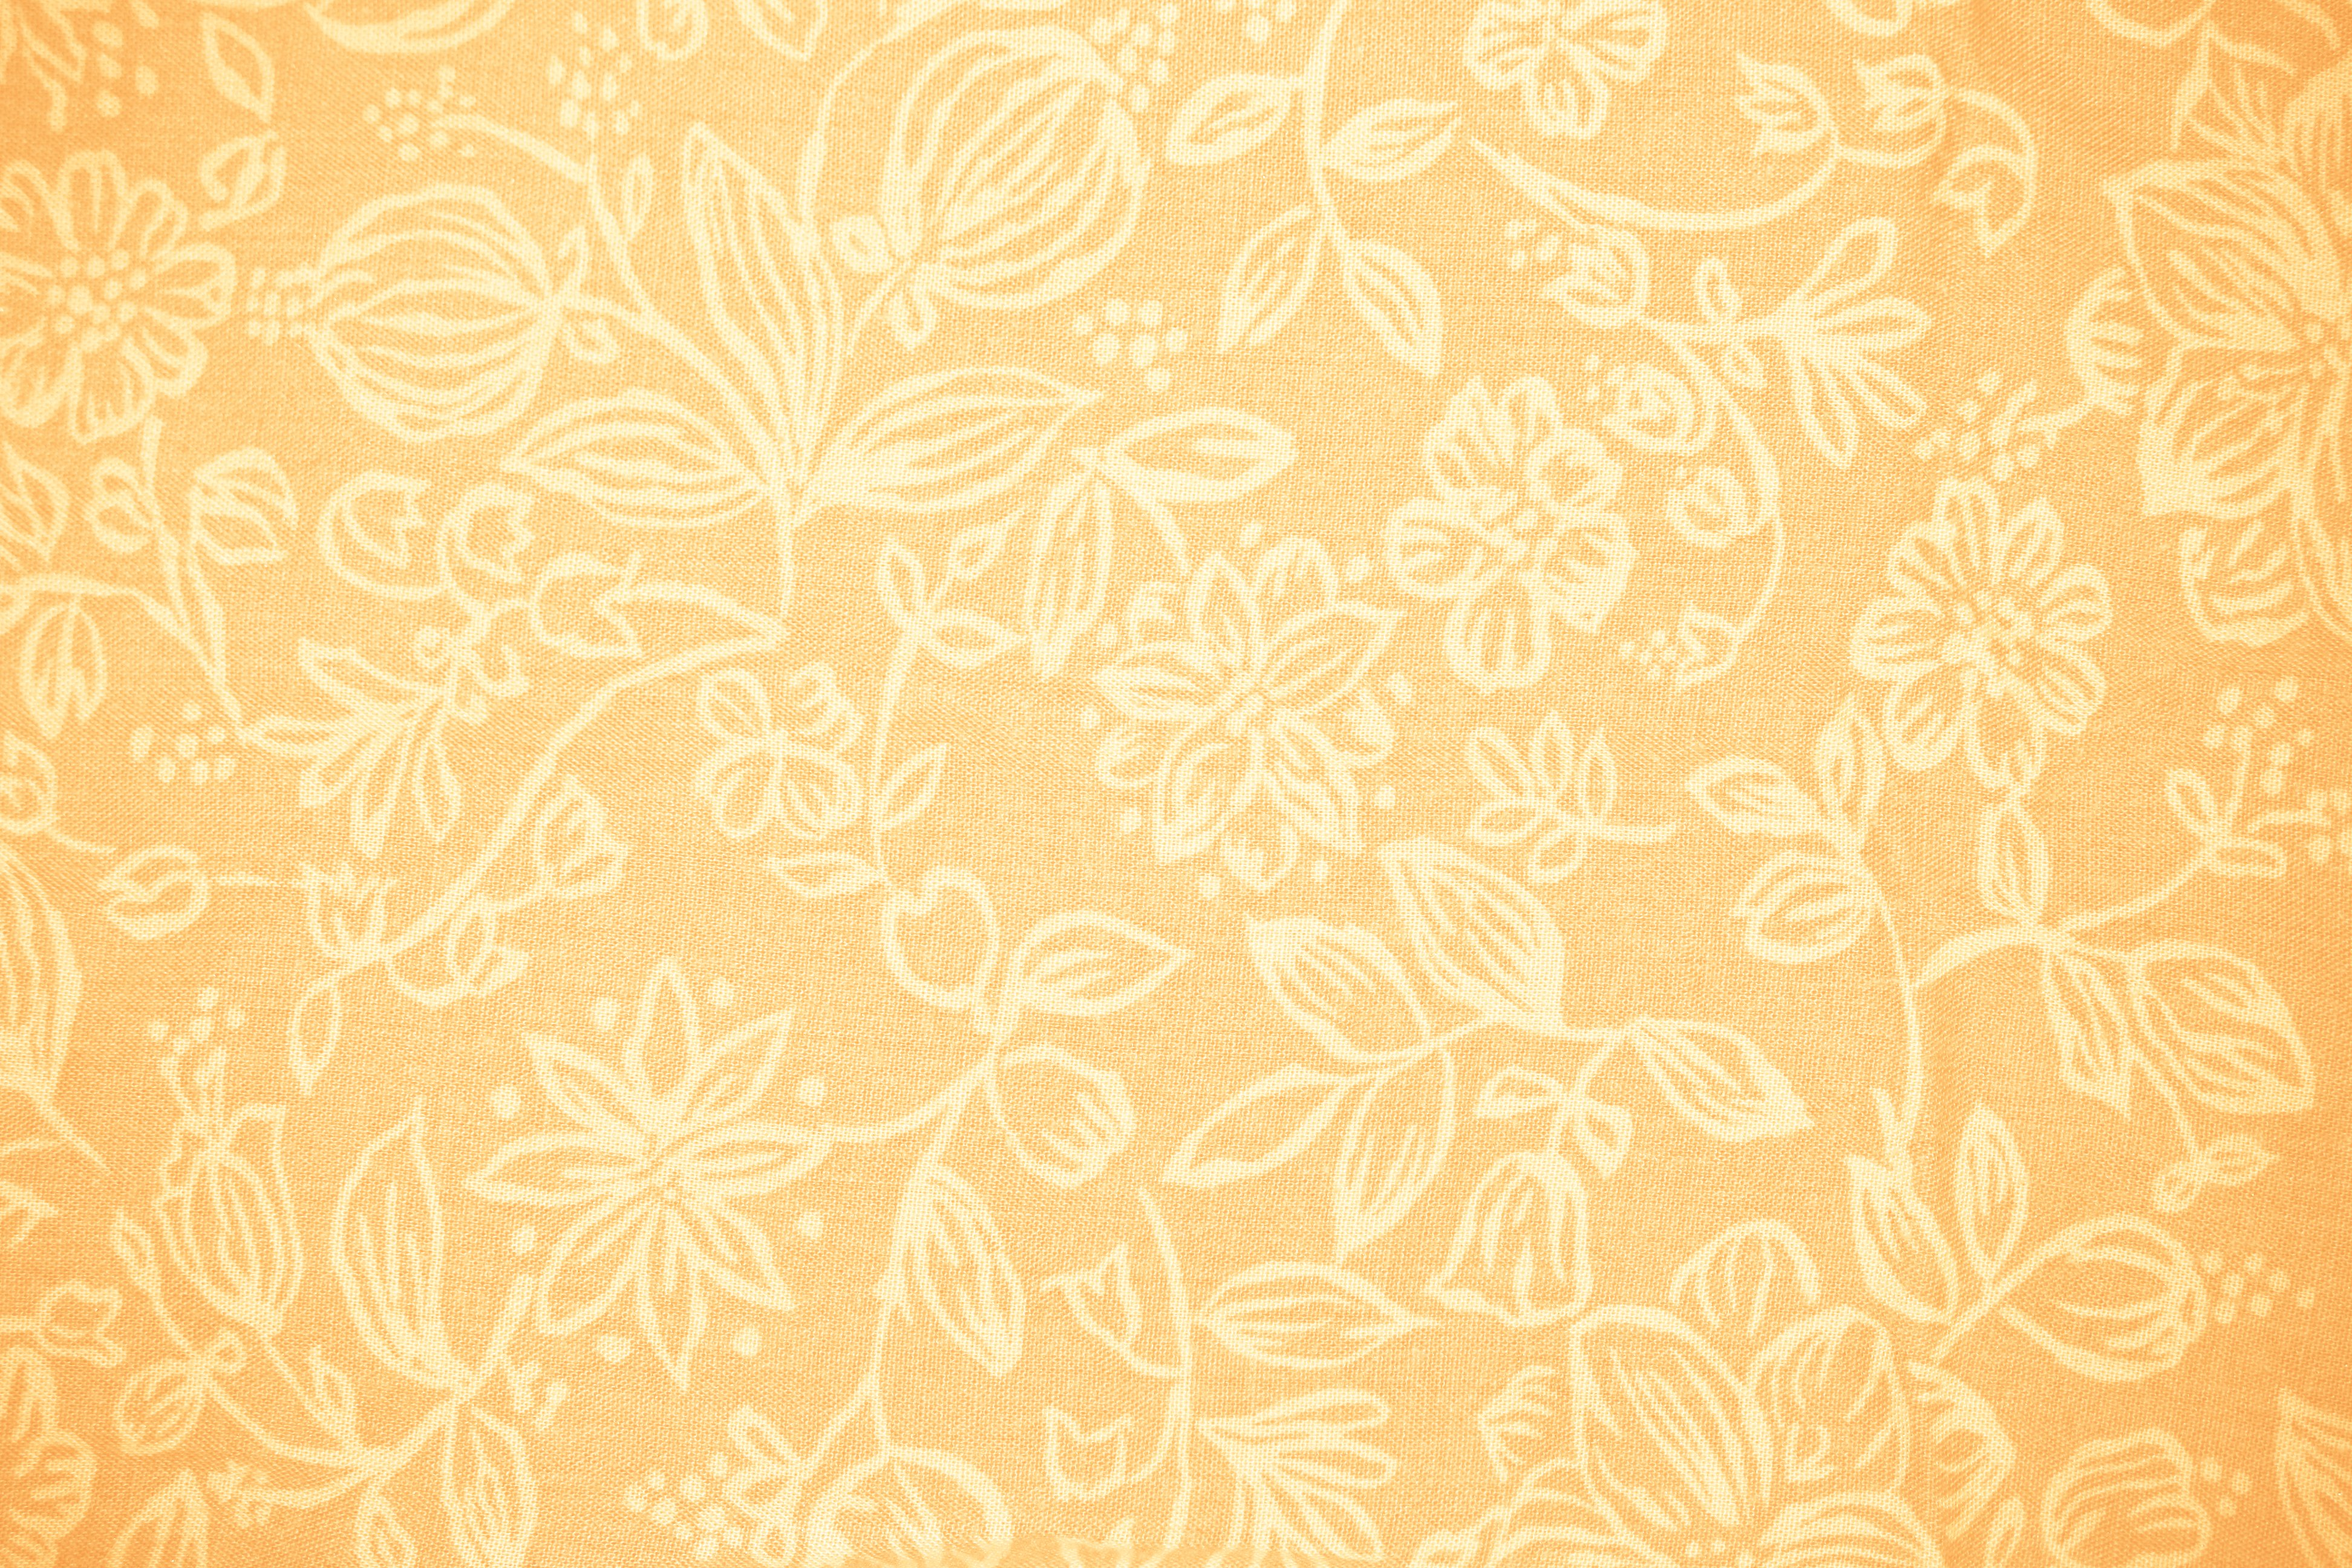 Peach Colored Fabric With Fl Pattern Texture Picture 3888x2592 Color Wallpaper Wallpapersafari